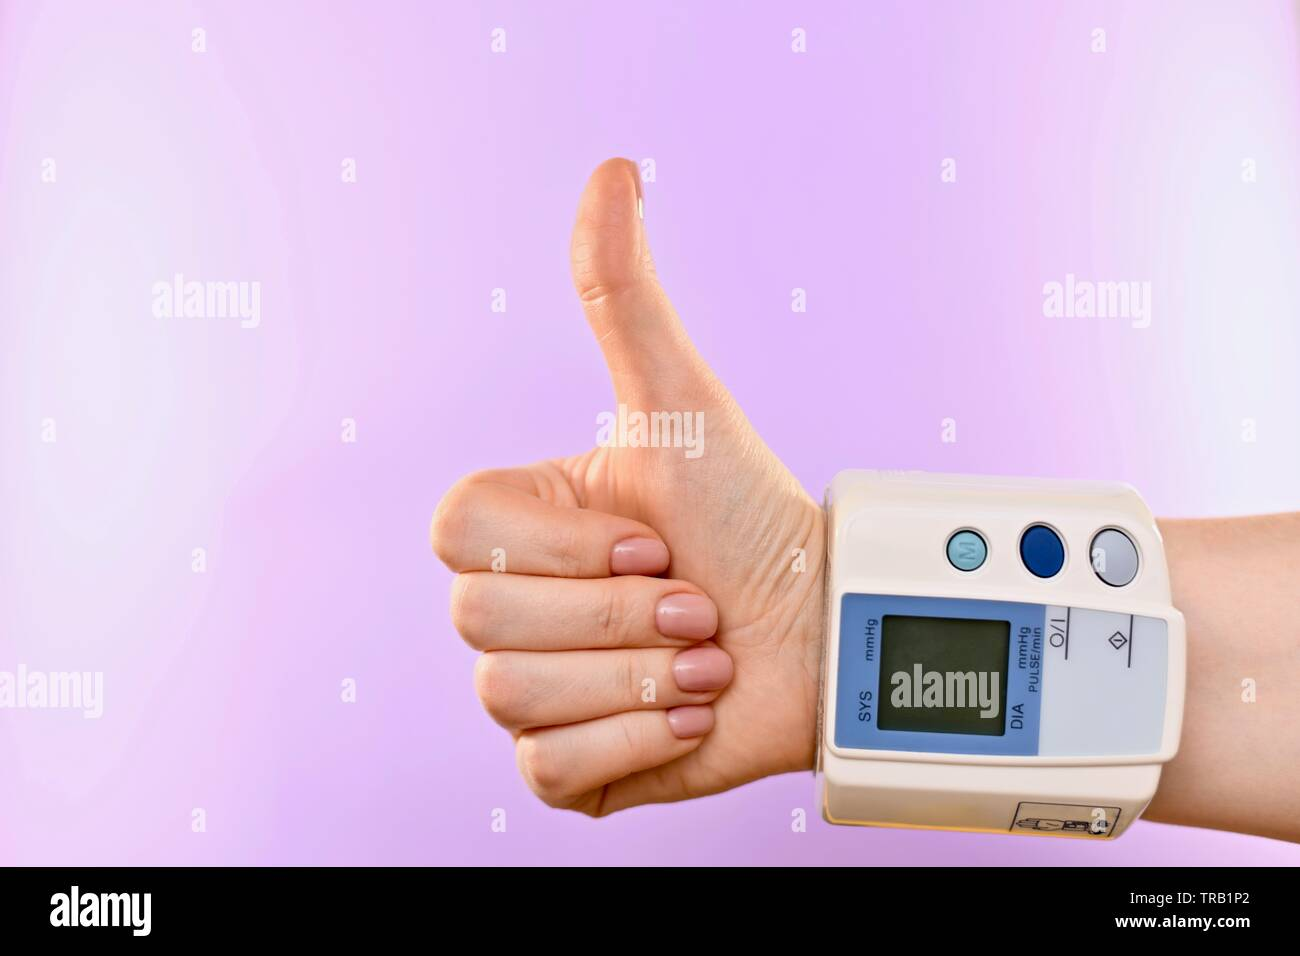 Arm and blood pressure monitor, buttoned at the wrist. In the center, from the bottom right corner. On a purple background. There are no indicators on - Stock Image